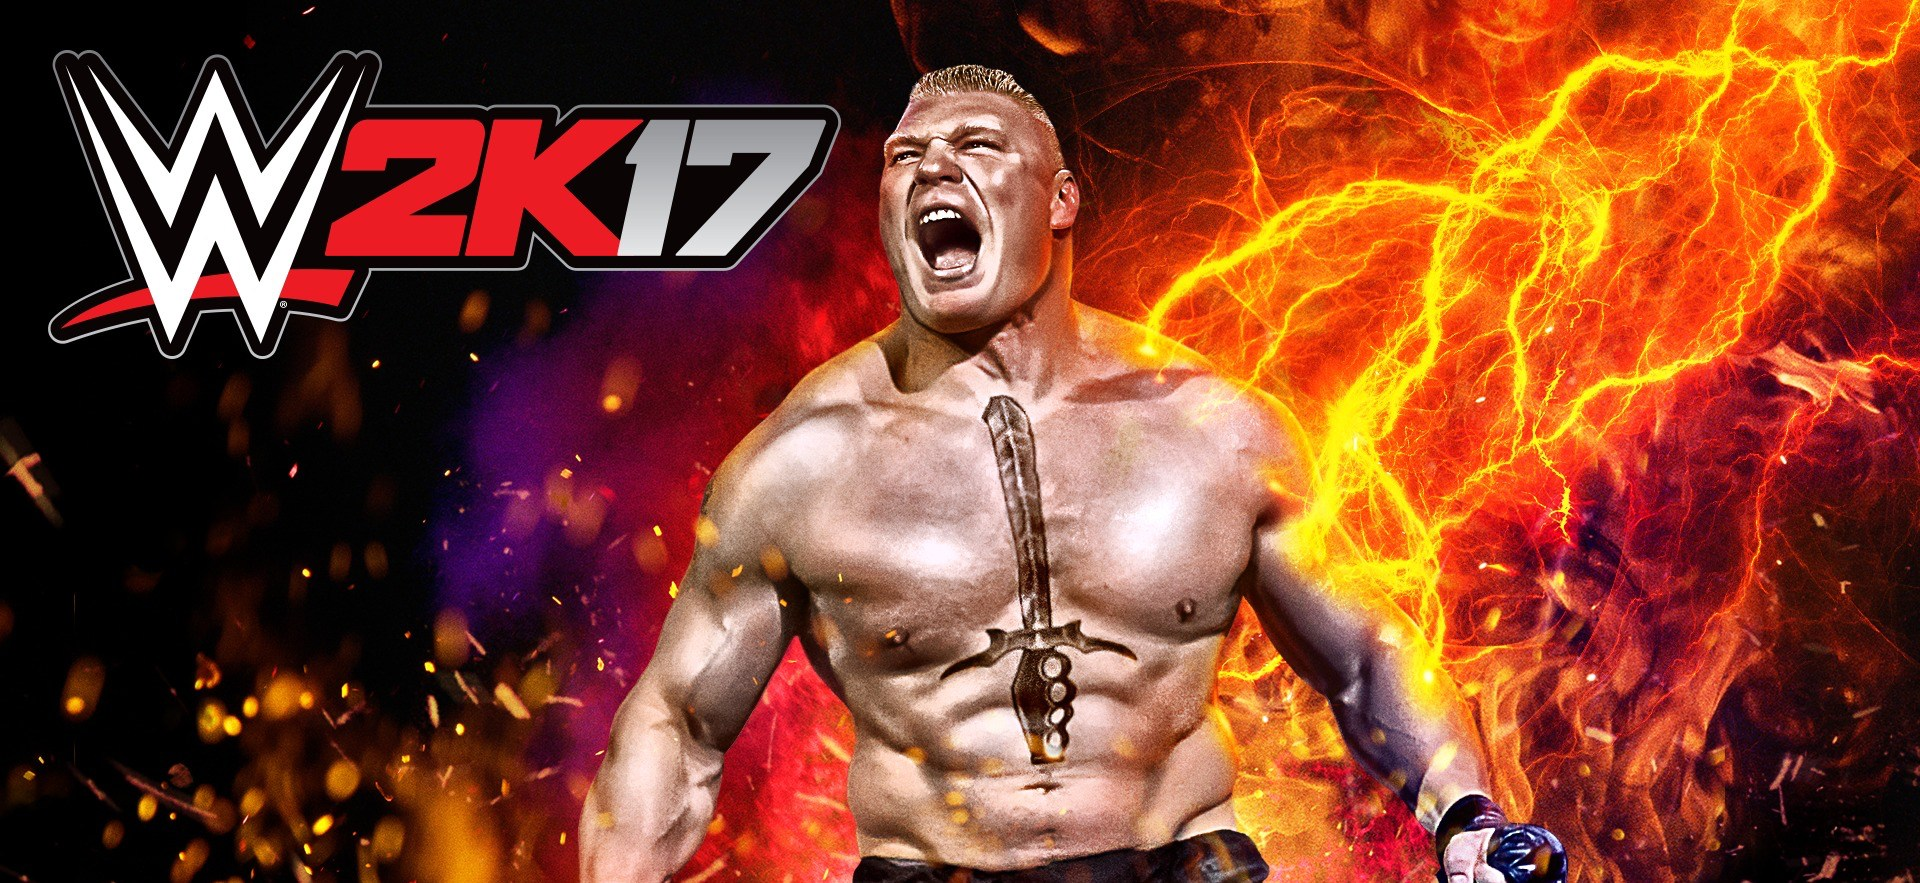 Artwork WWE2K17 Brock Lesnar